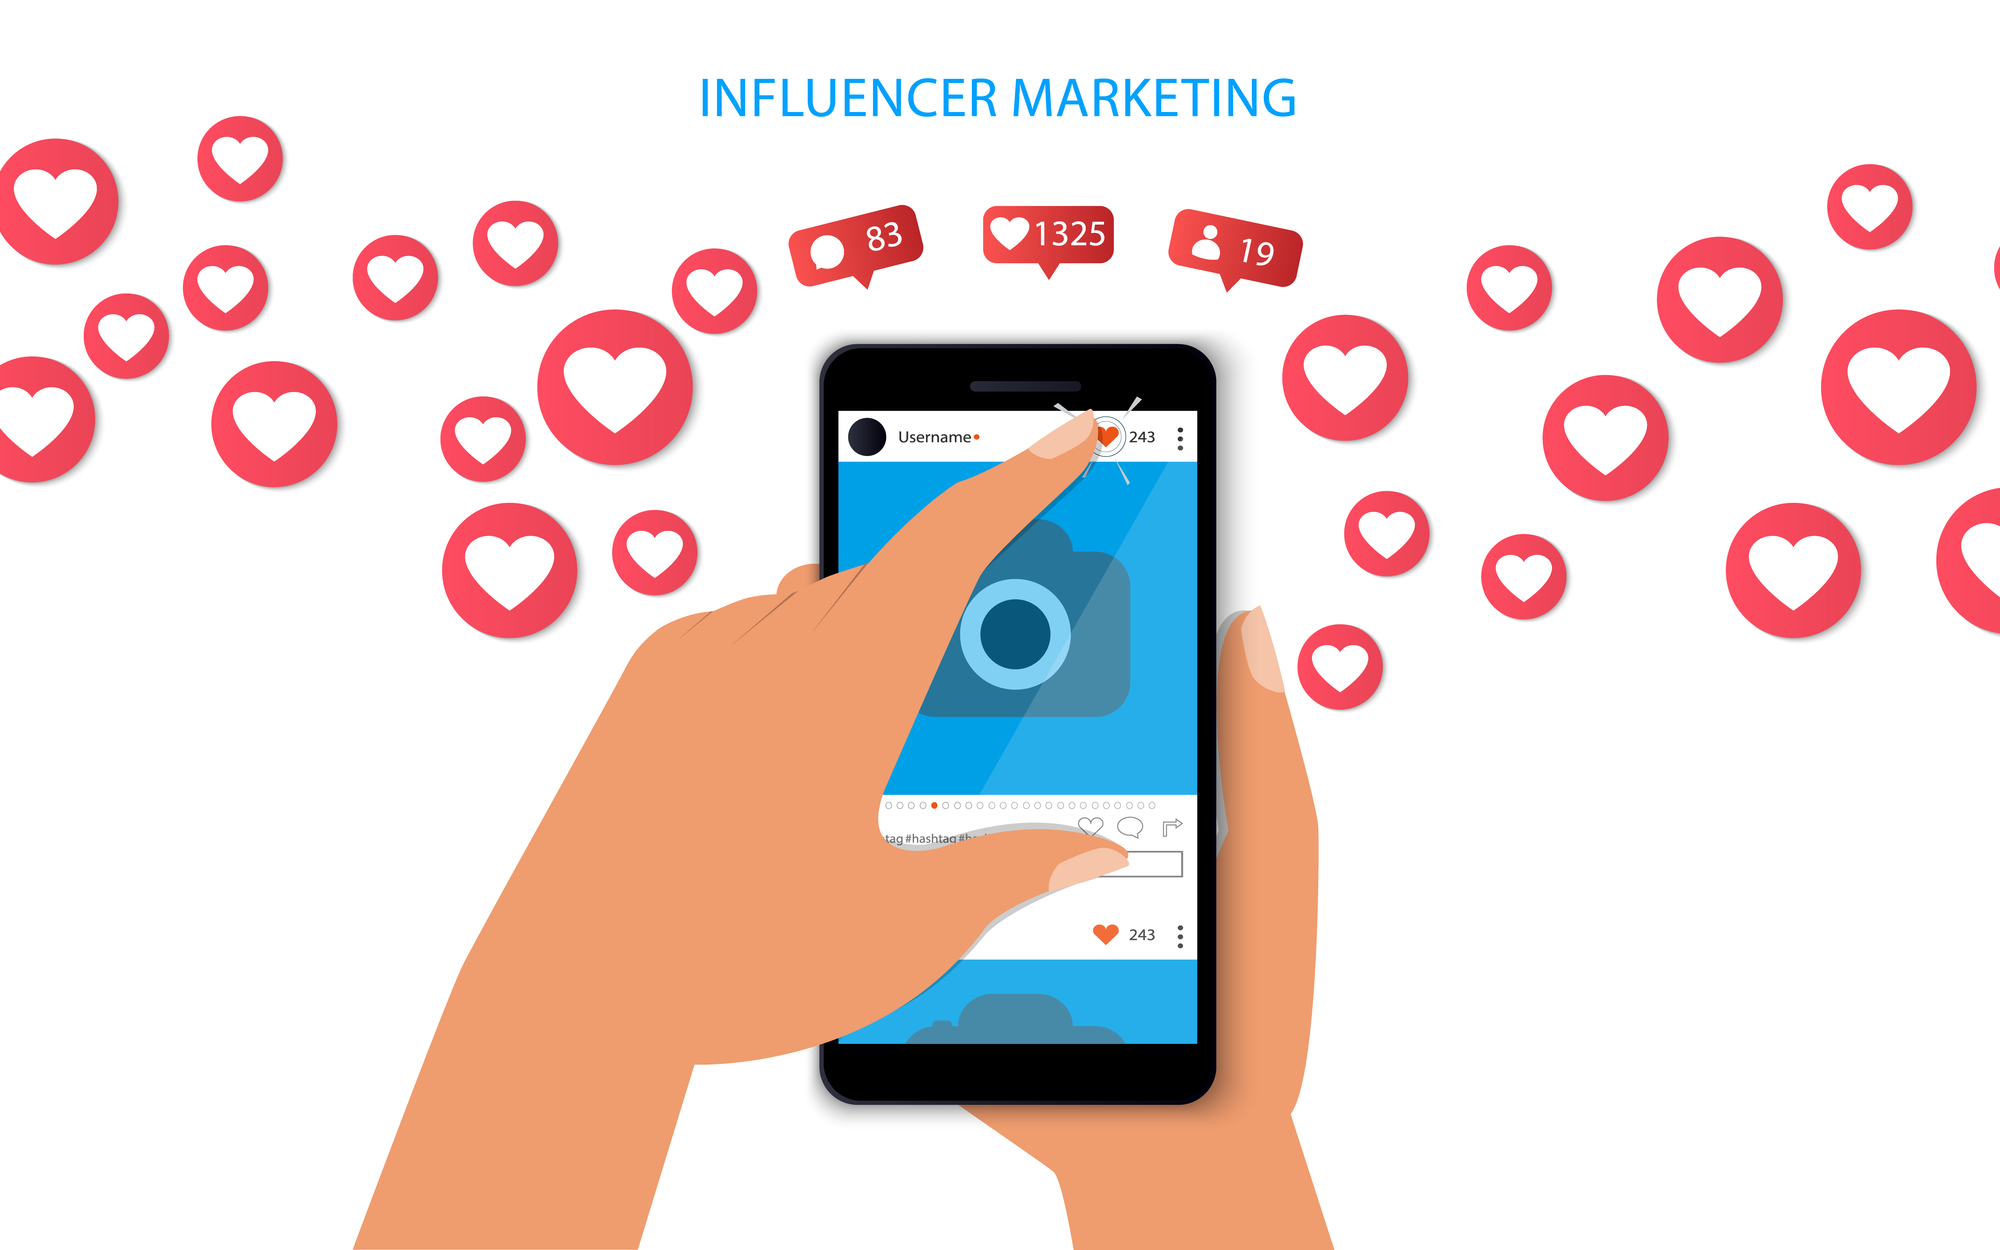 Influencer Marketing: 10 Top Mistakes Brands Make and How to Fix Them